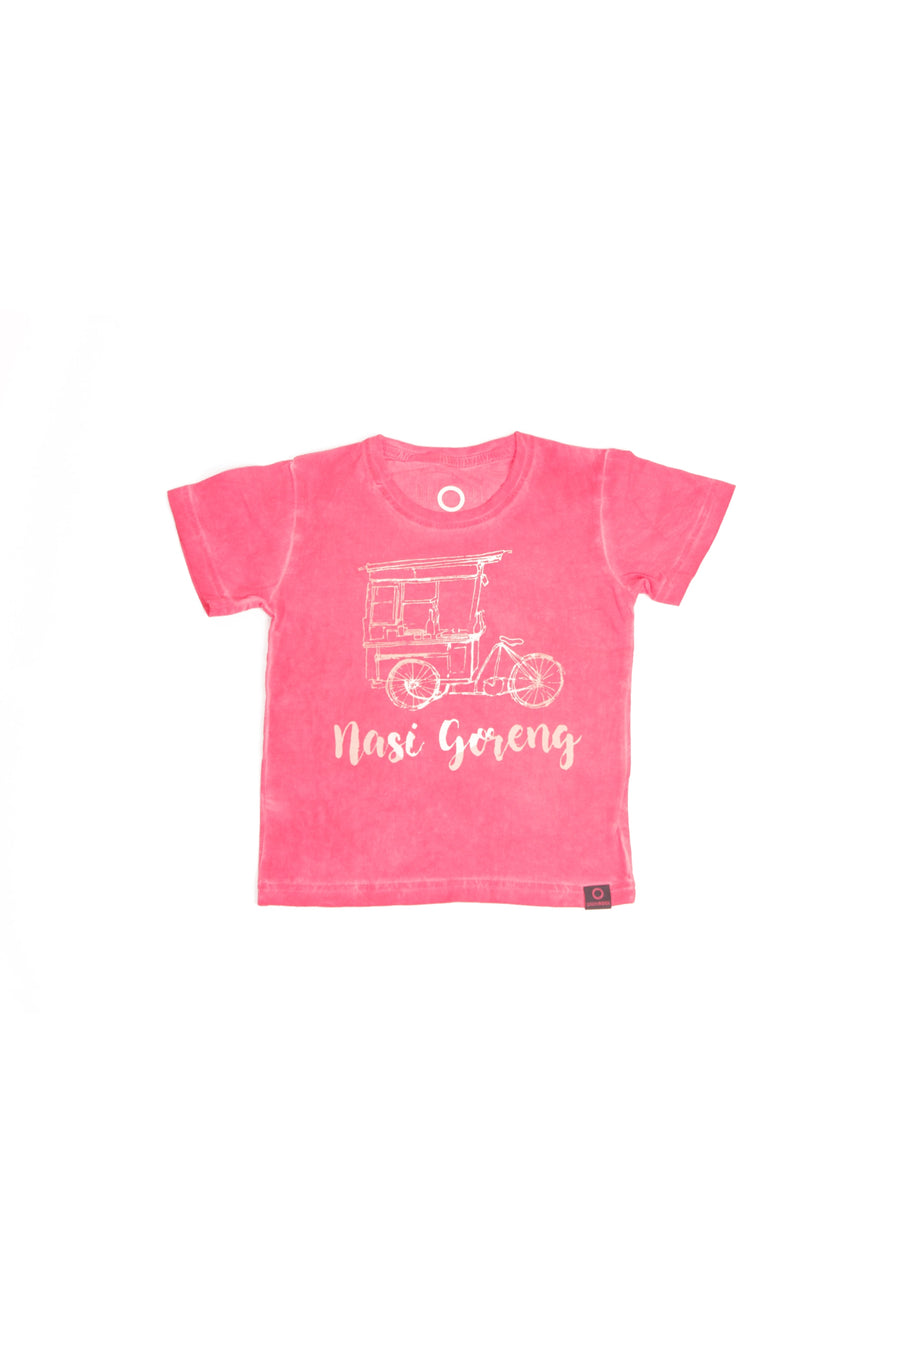 T-Shirt Kids Nasi Goreng Pigment Dye Red - Greenrock Indonesia